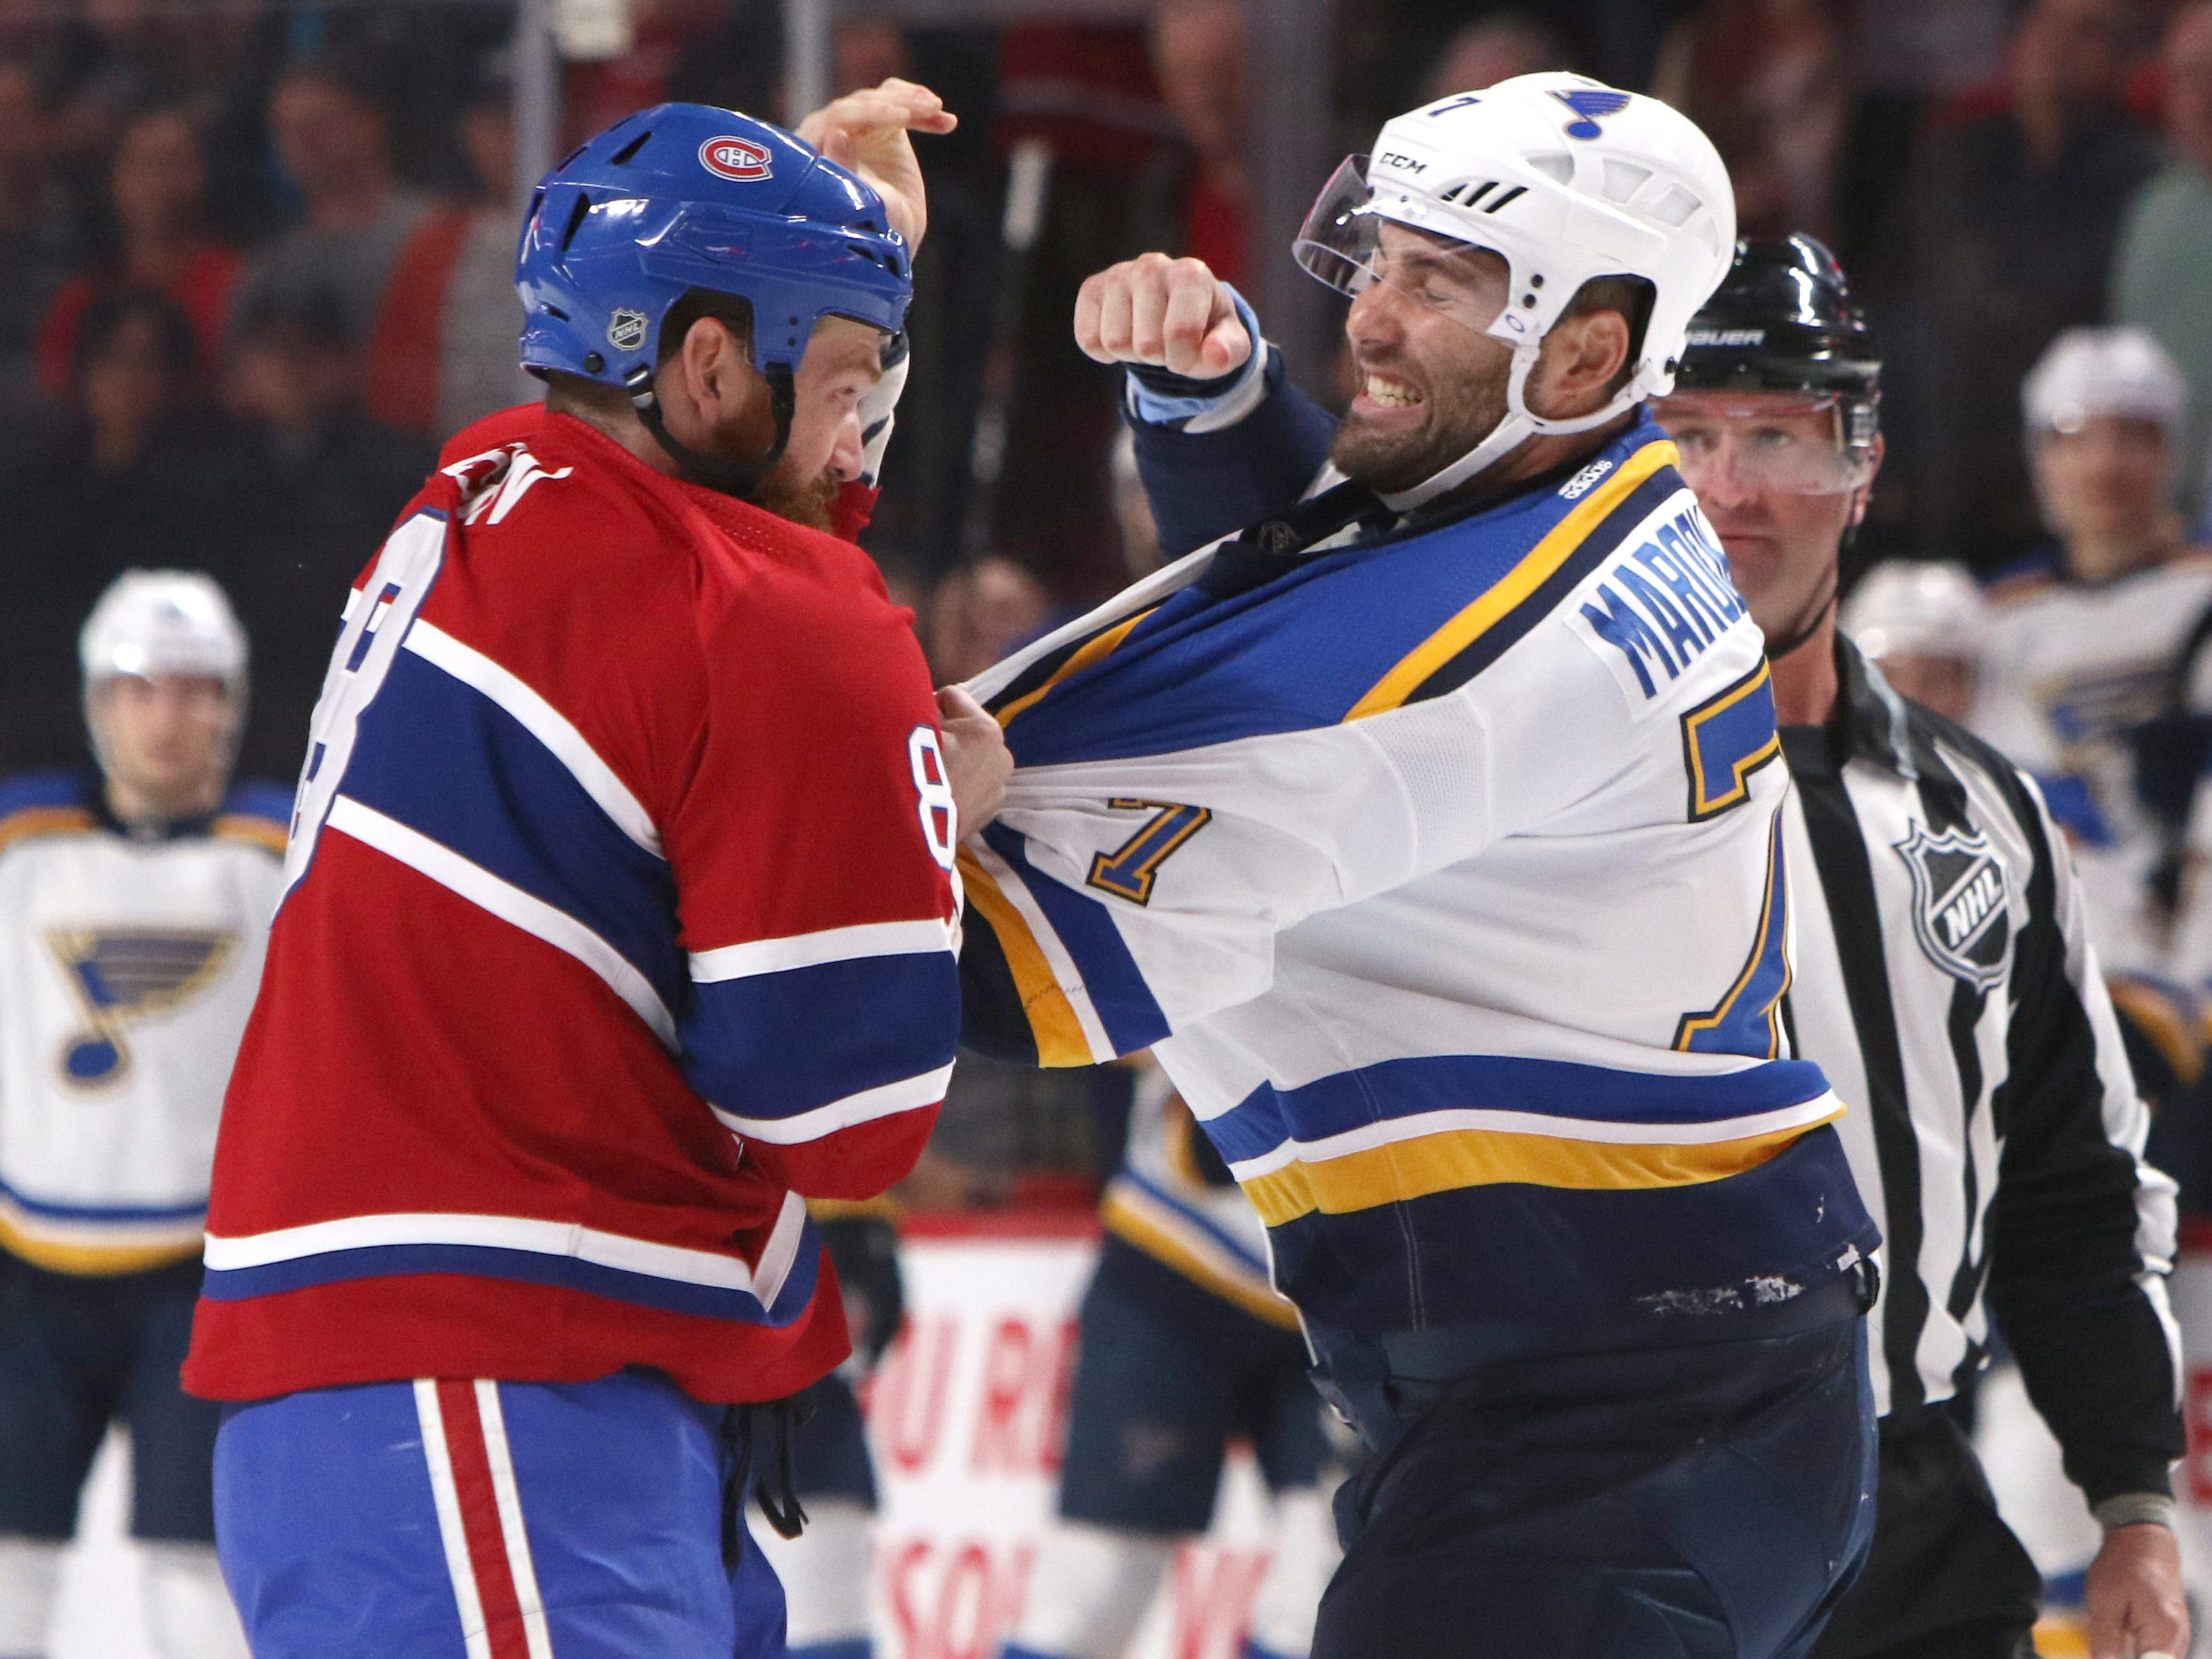 Oct. 17: The Canadiens' Jordie Benn vs. the Blues' Pat Maroon.